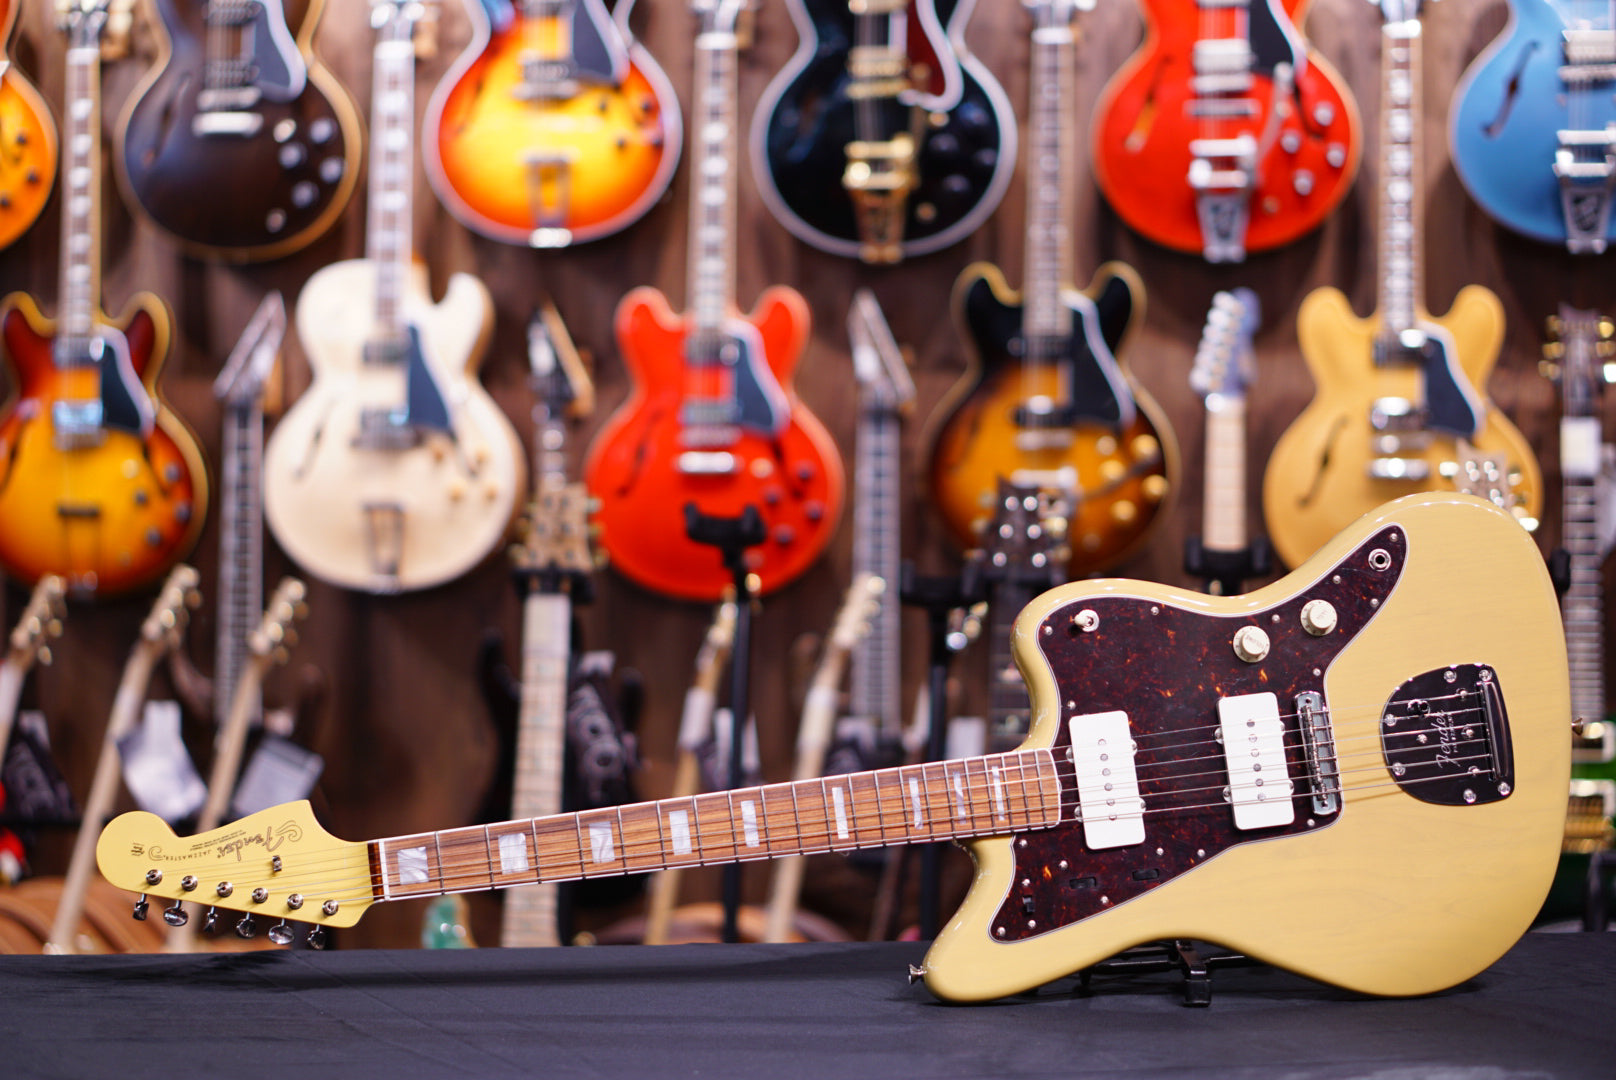 Fender 60th anniversary jazzmaster in natural